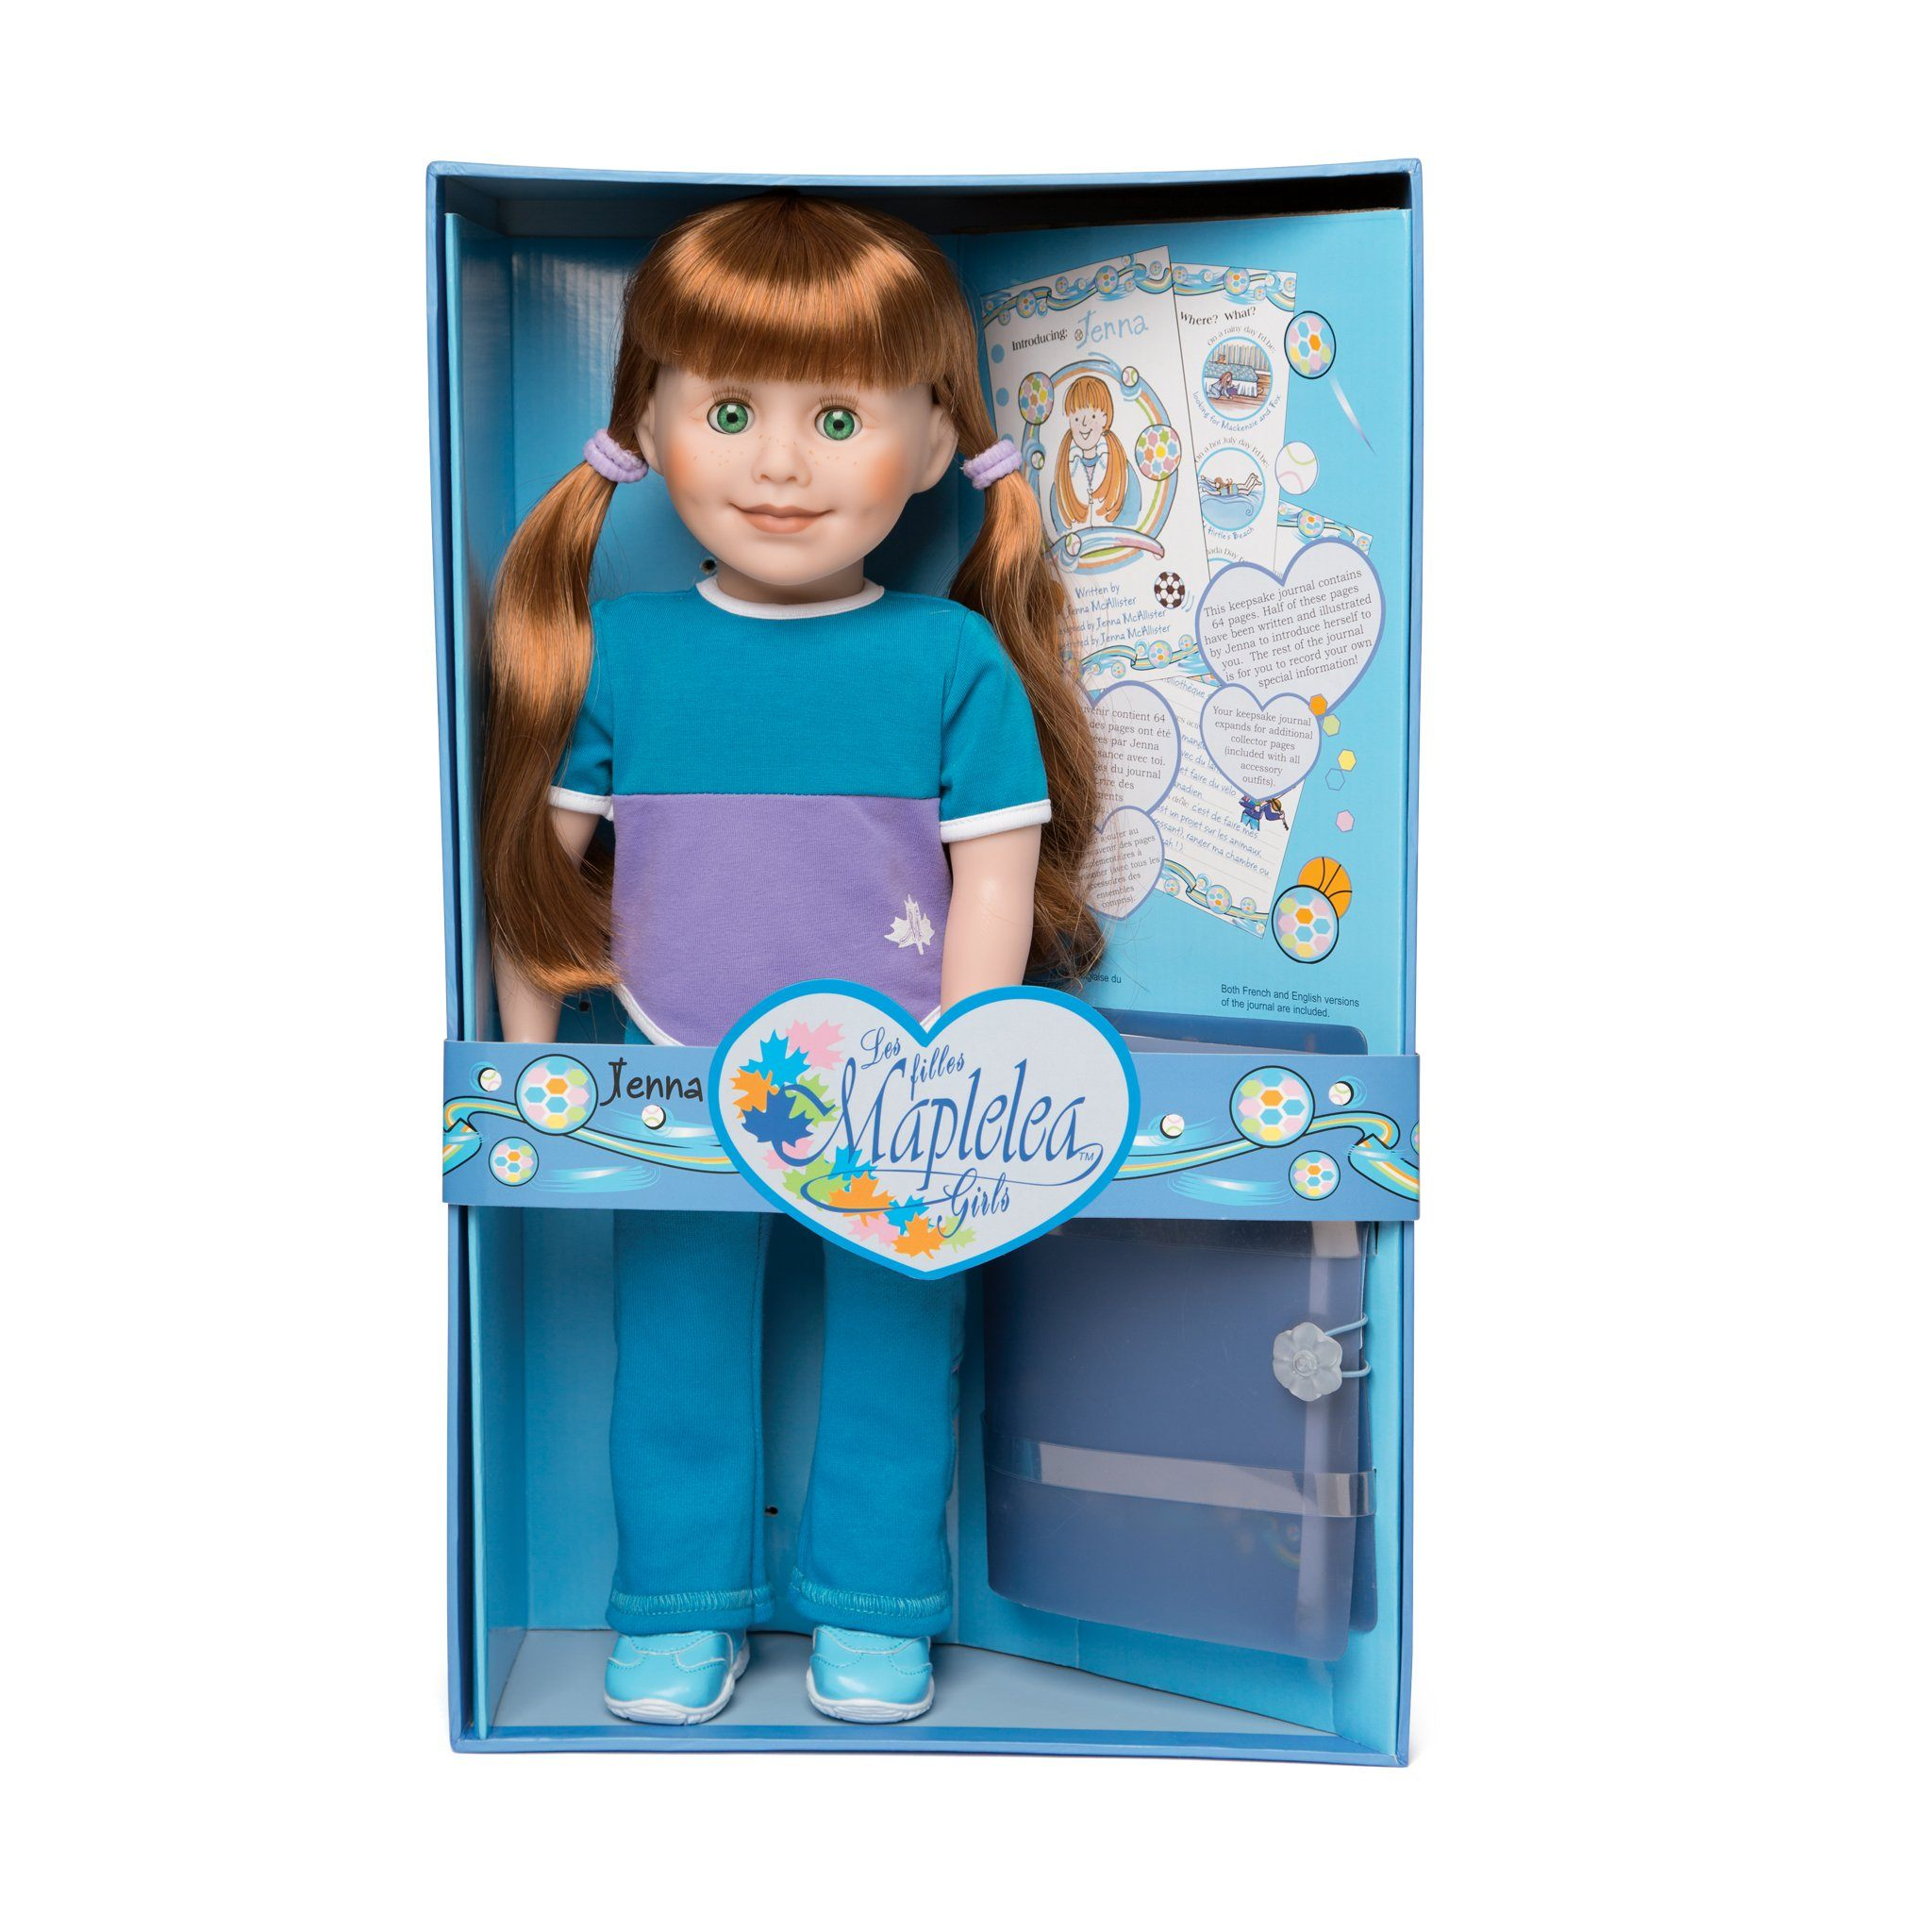 Maplelea 18 inch doll Jenna wearing blue track pants, purple and blue colour block t-shirt, blue running shoes and white athletic socks. Shown in collector box.